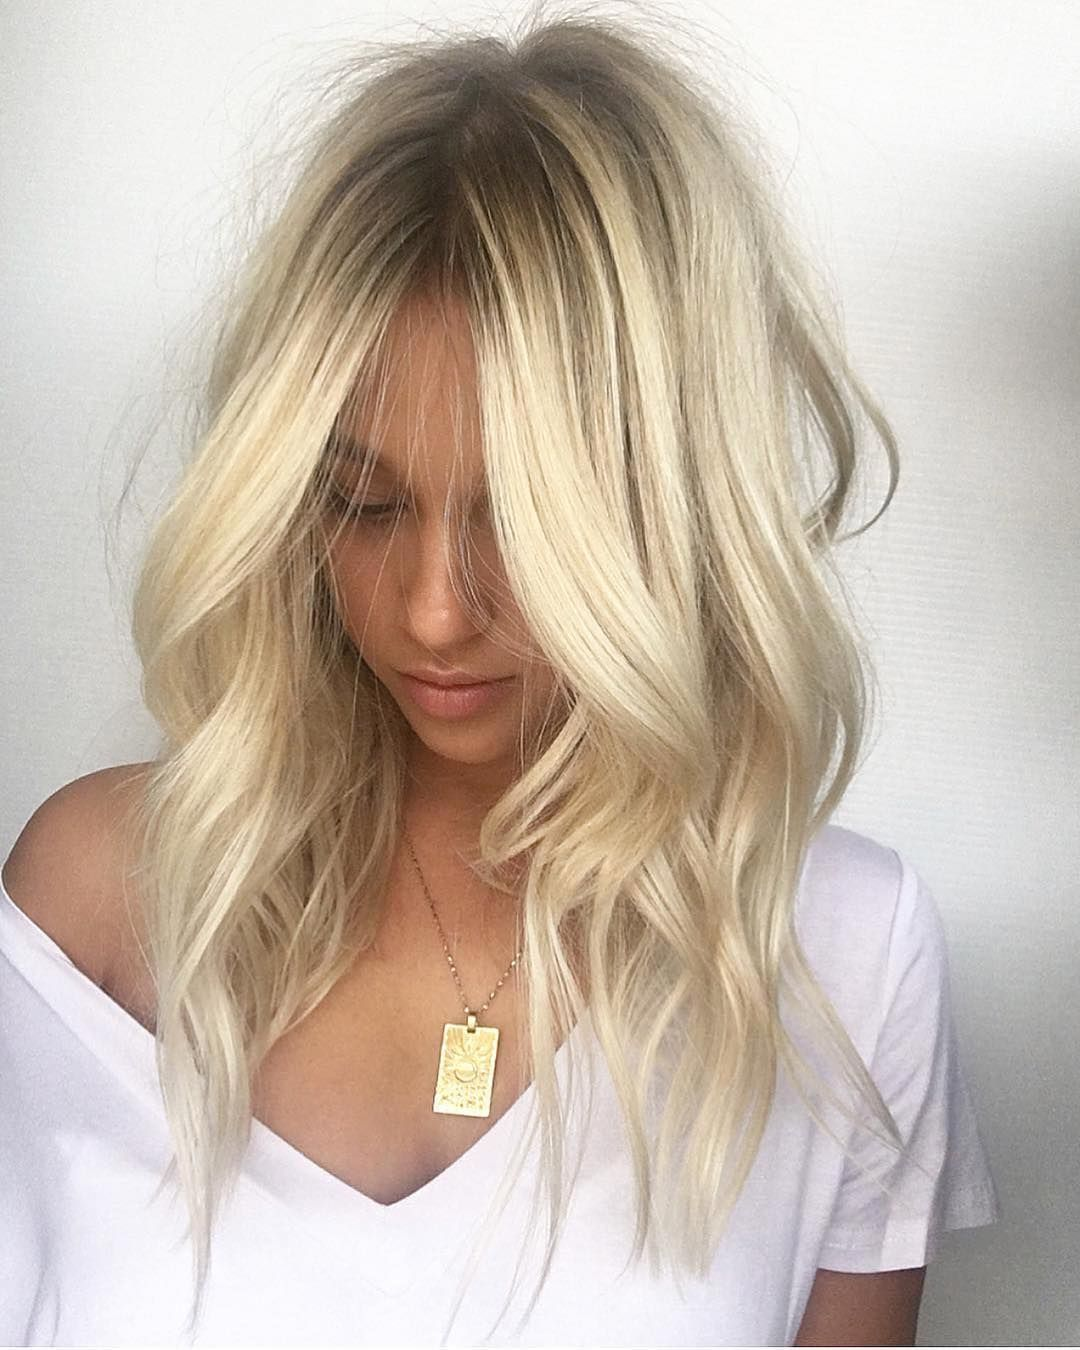 These 10 Hair Color Trends Are Dominating 2019 Right Now